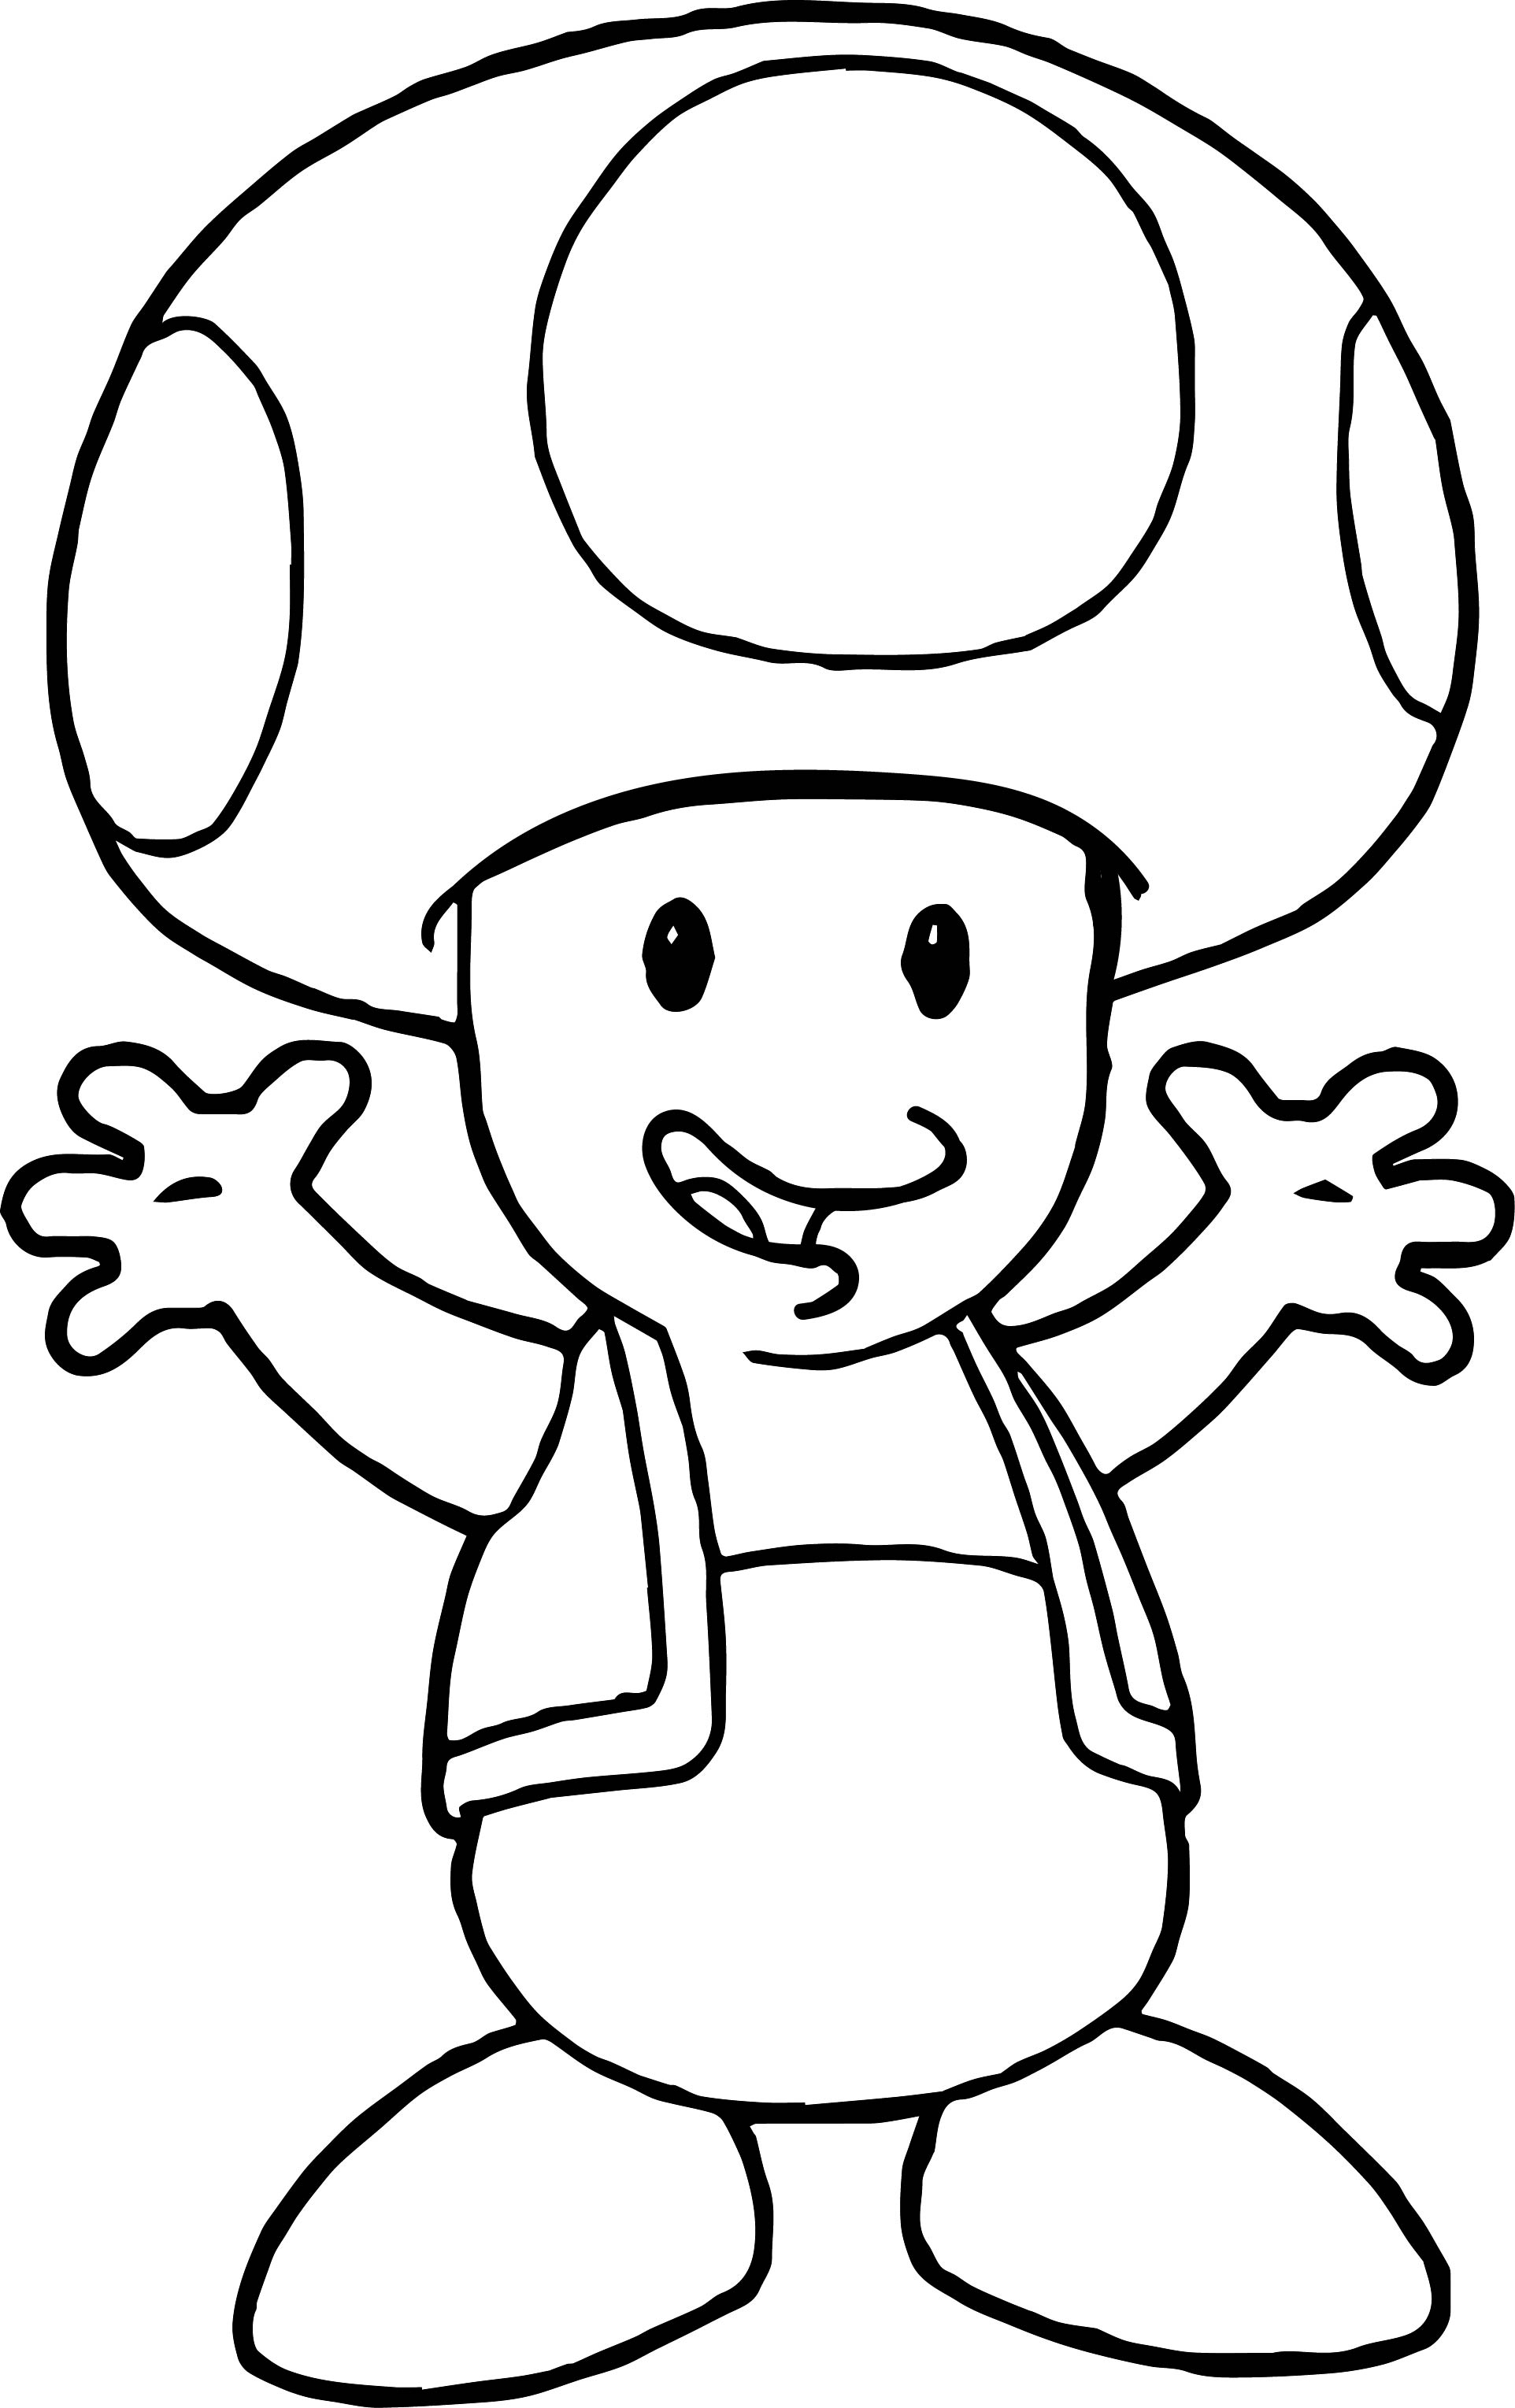 Toad And Toadette Coloring Pages Coloring Mario Nintendong Pages Vector Art Black And White Free